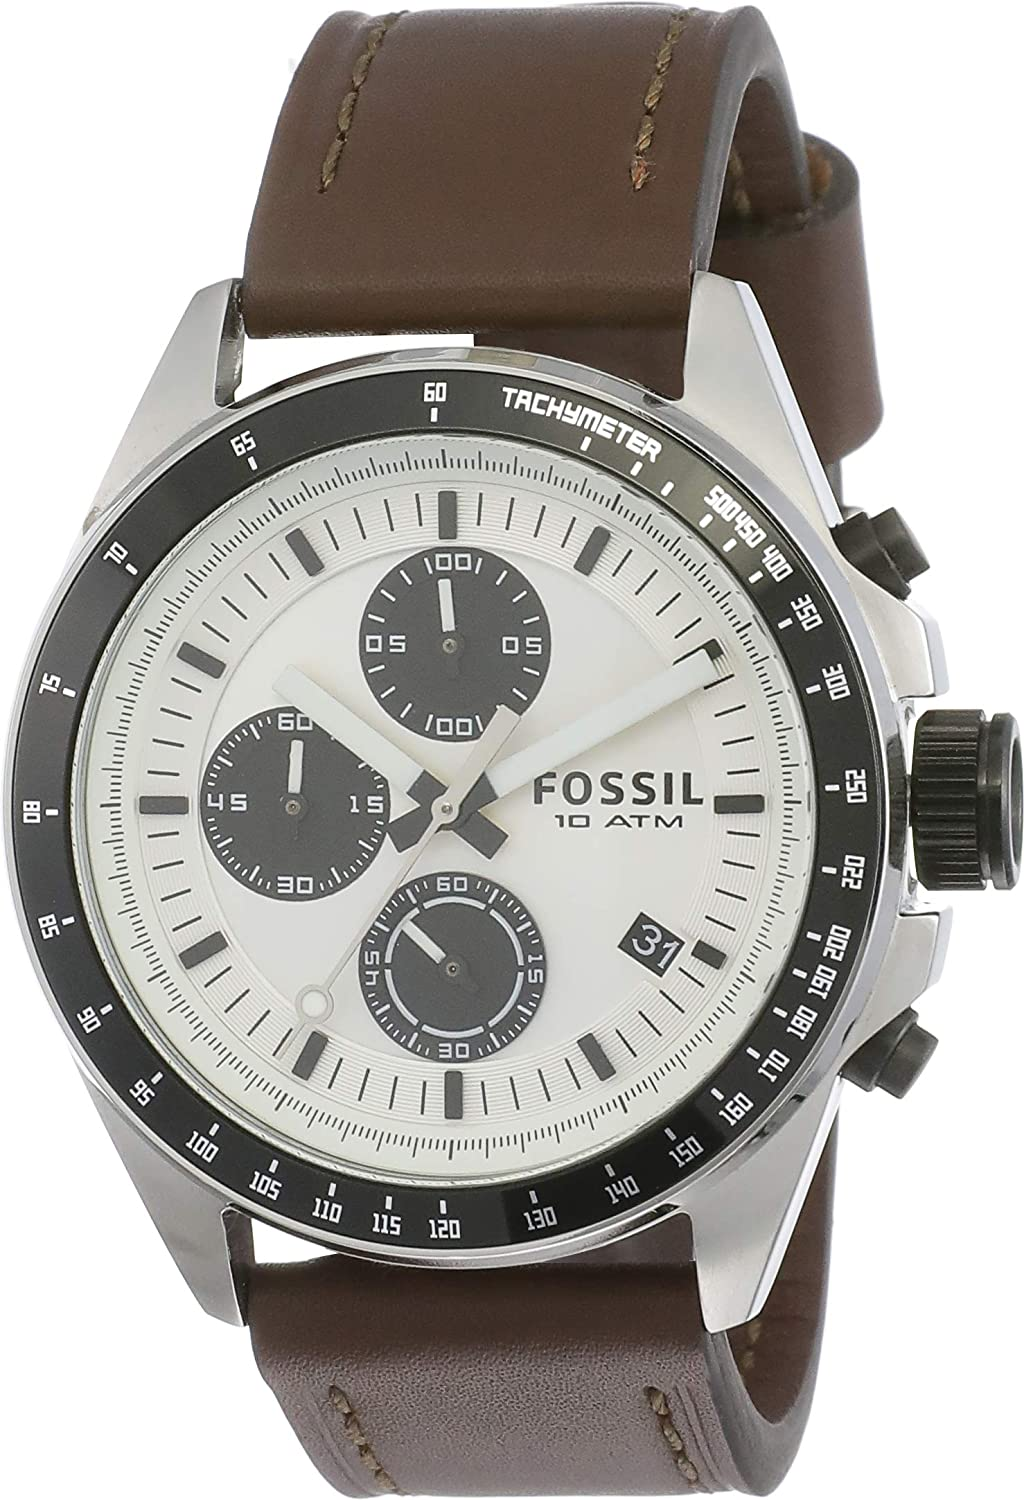 Fossil Chronograph White Dial Best Mens Watches Under 5000 in India to buy in 2019 - Reviews & Buyers Guide